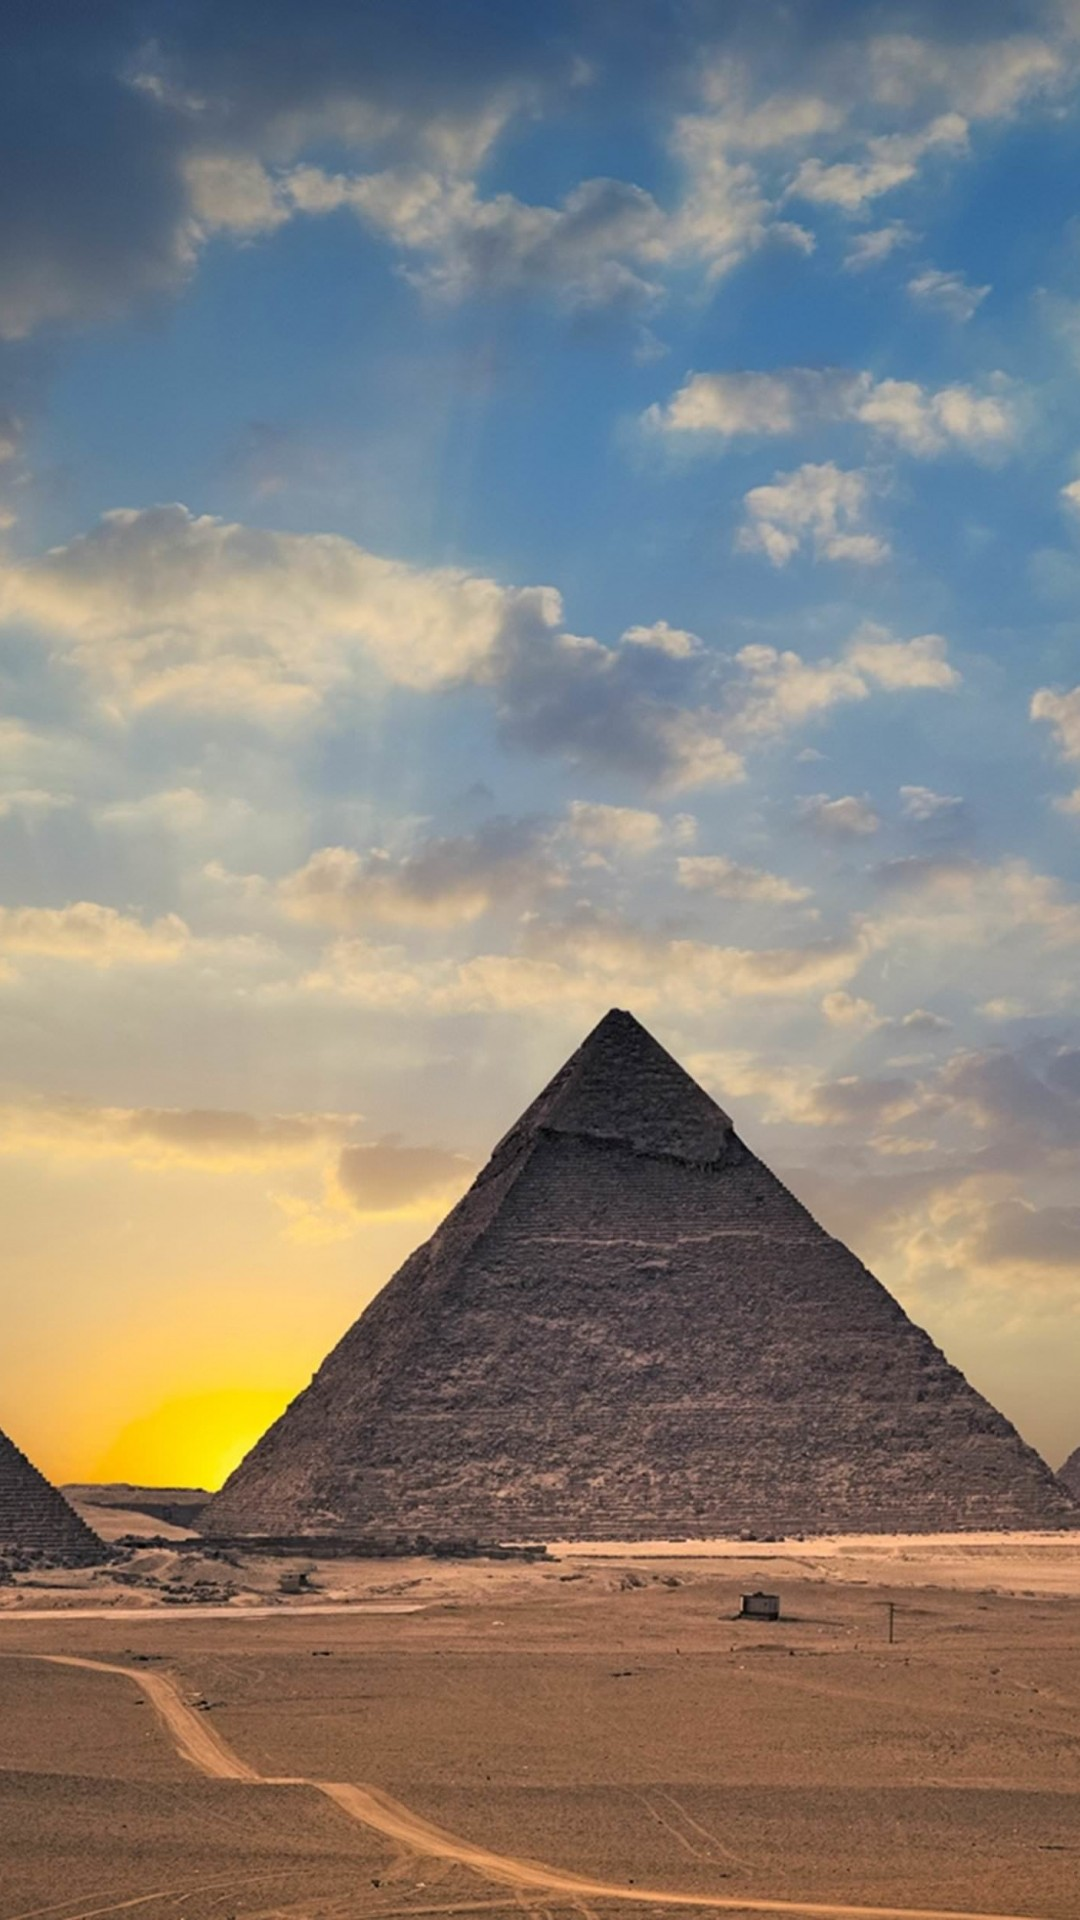 The Great Pyramids of Giza Wallpaper for HTC One